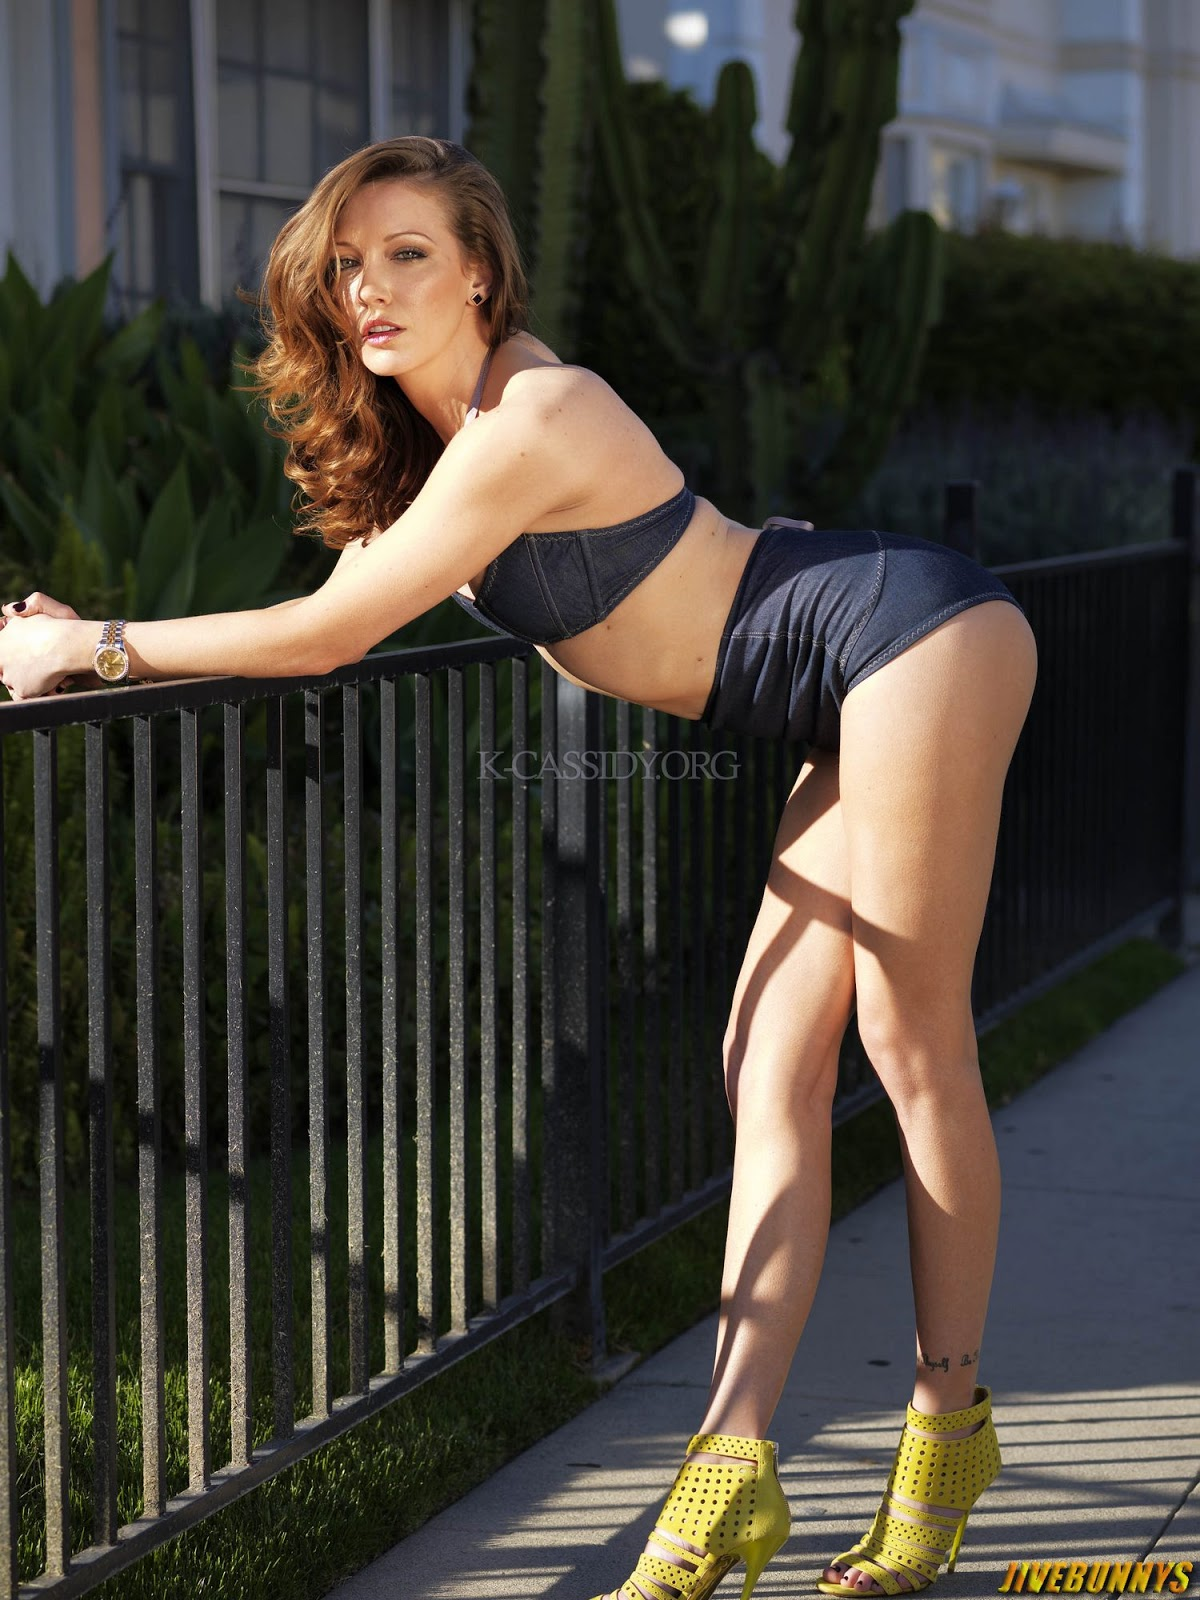 Jivebunnys Female Celebrity Picture Gallery: Katie Cassidy Sexy Photos ...